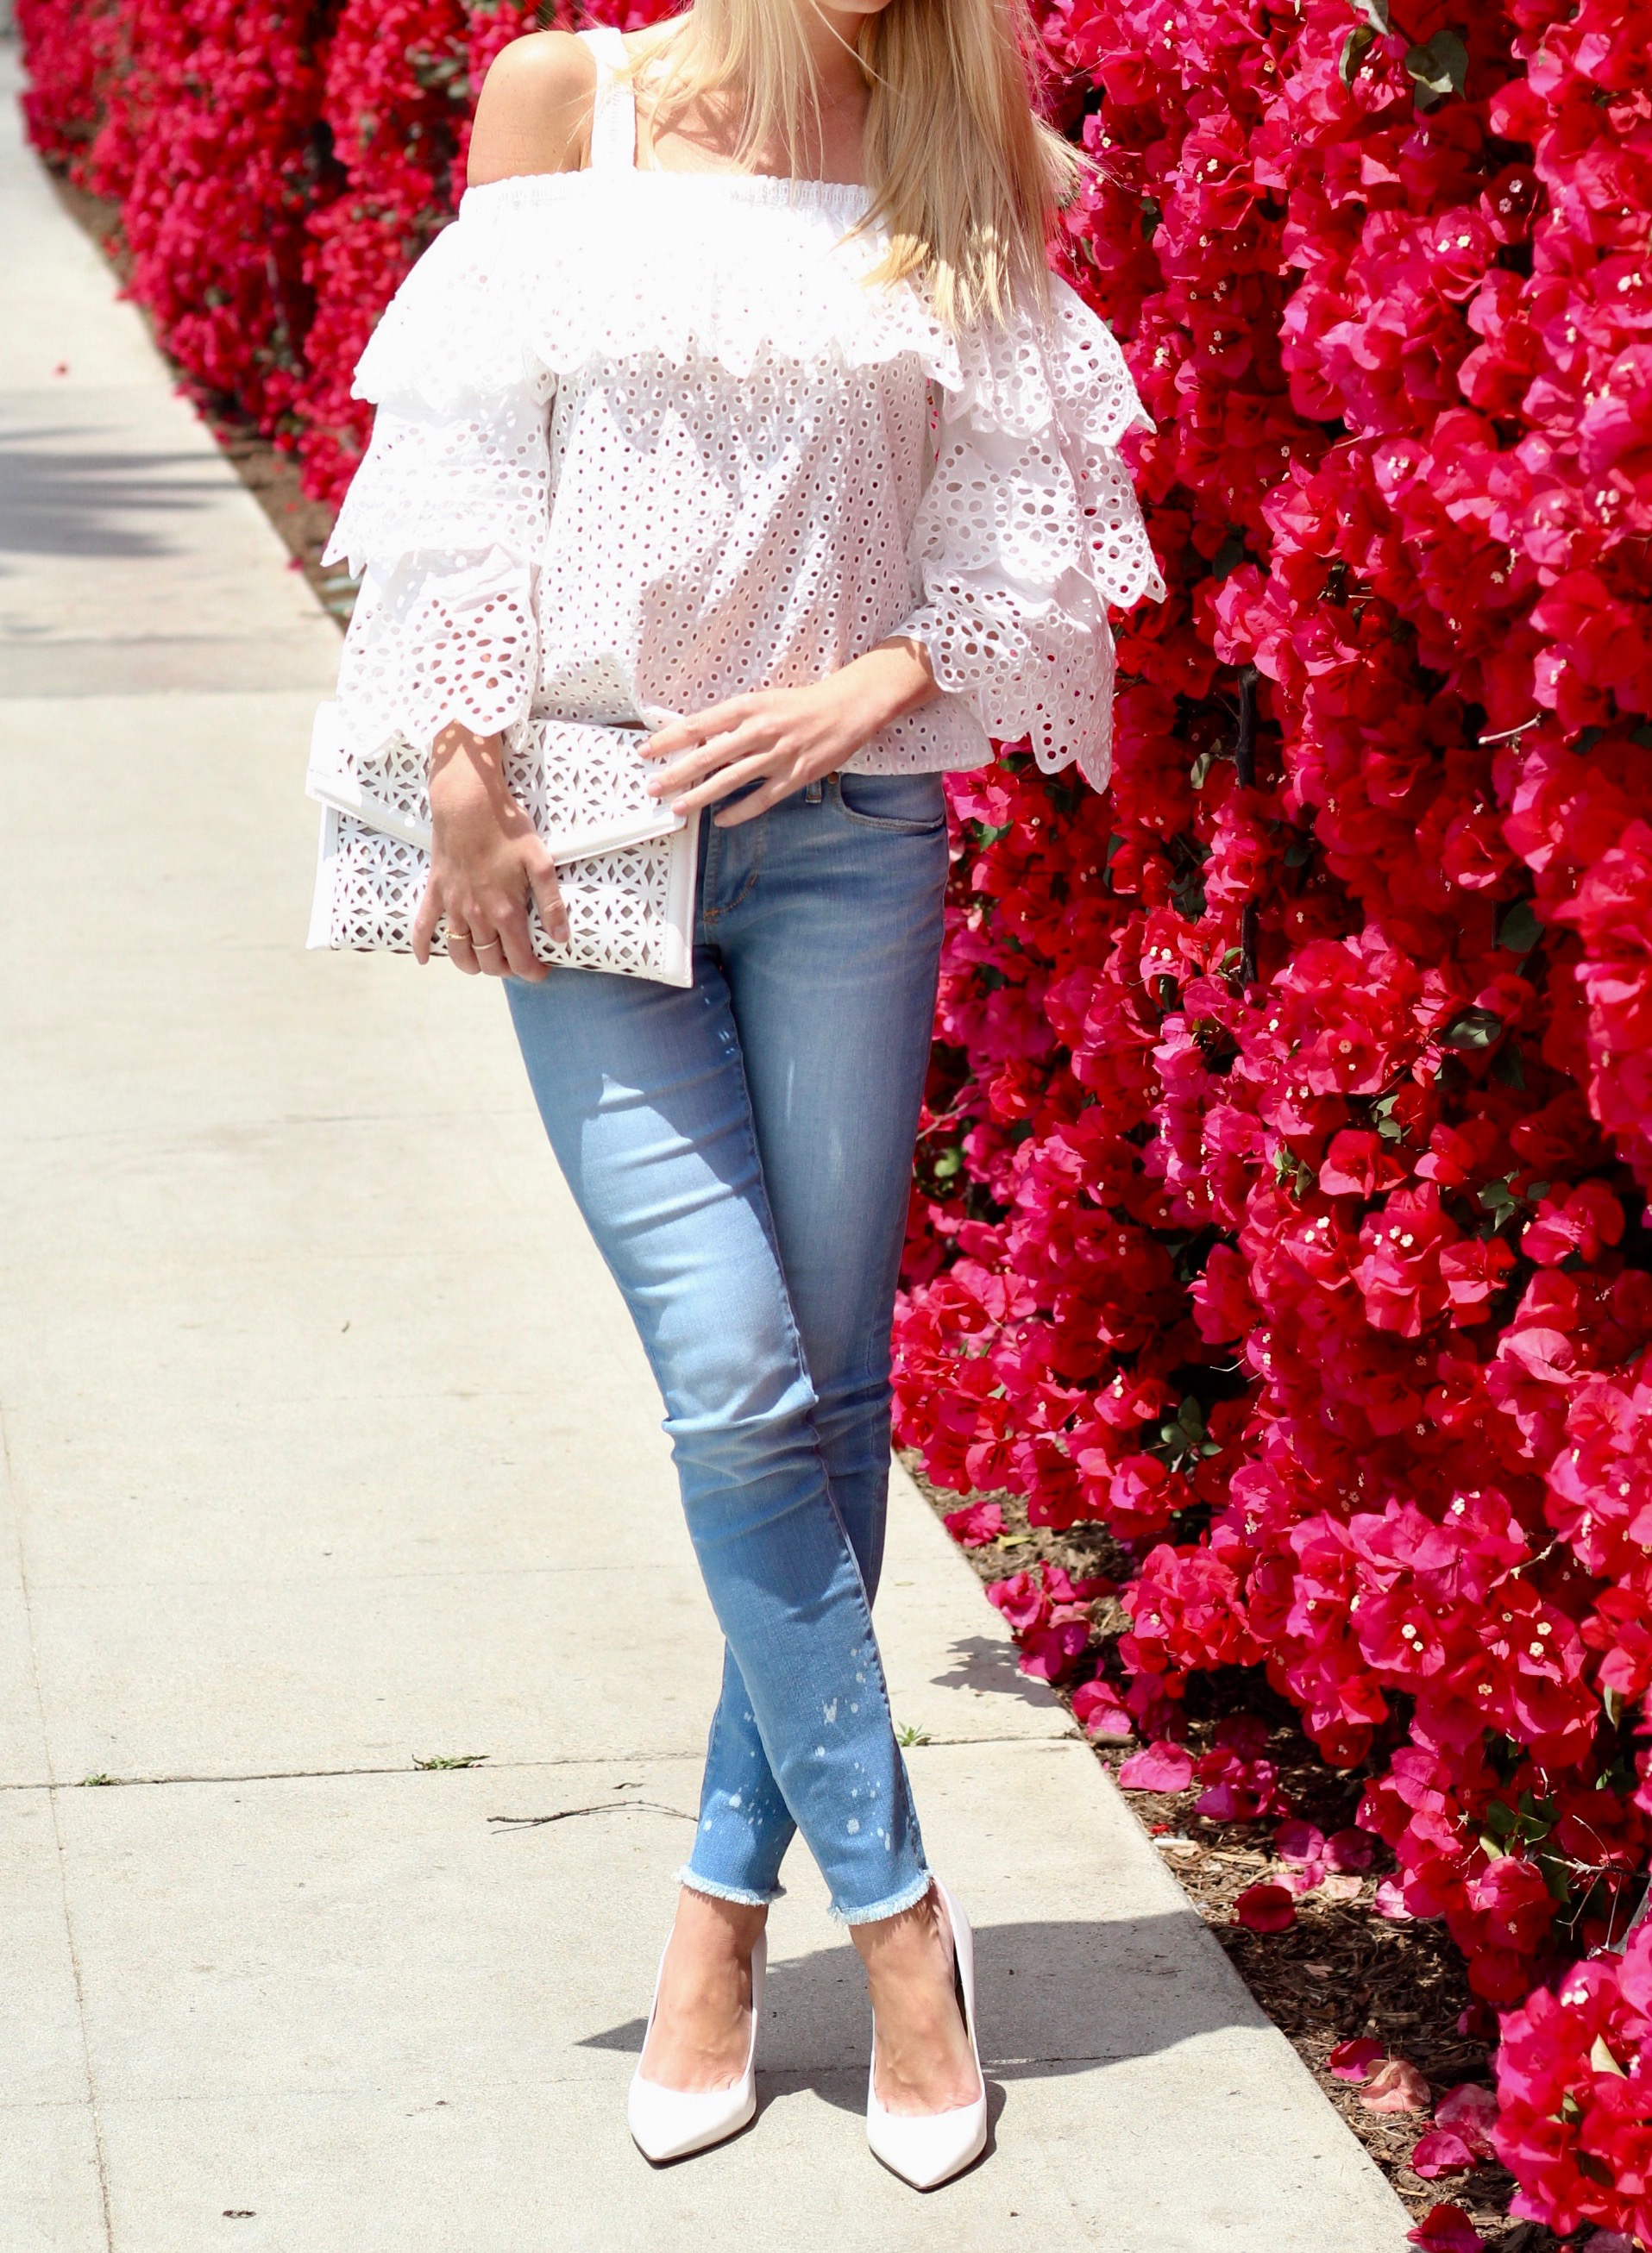 White Eyelet Top from Endless Rose & Articles of Society Jeans